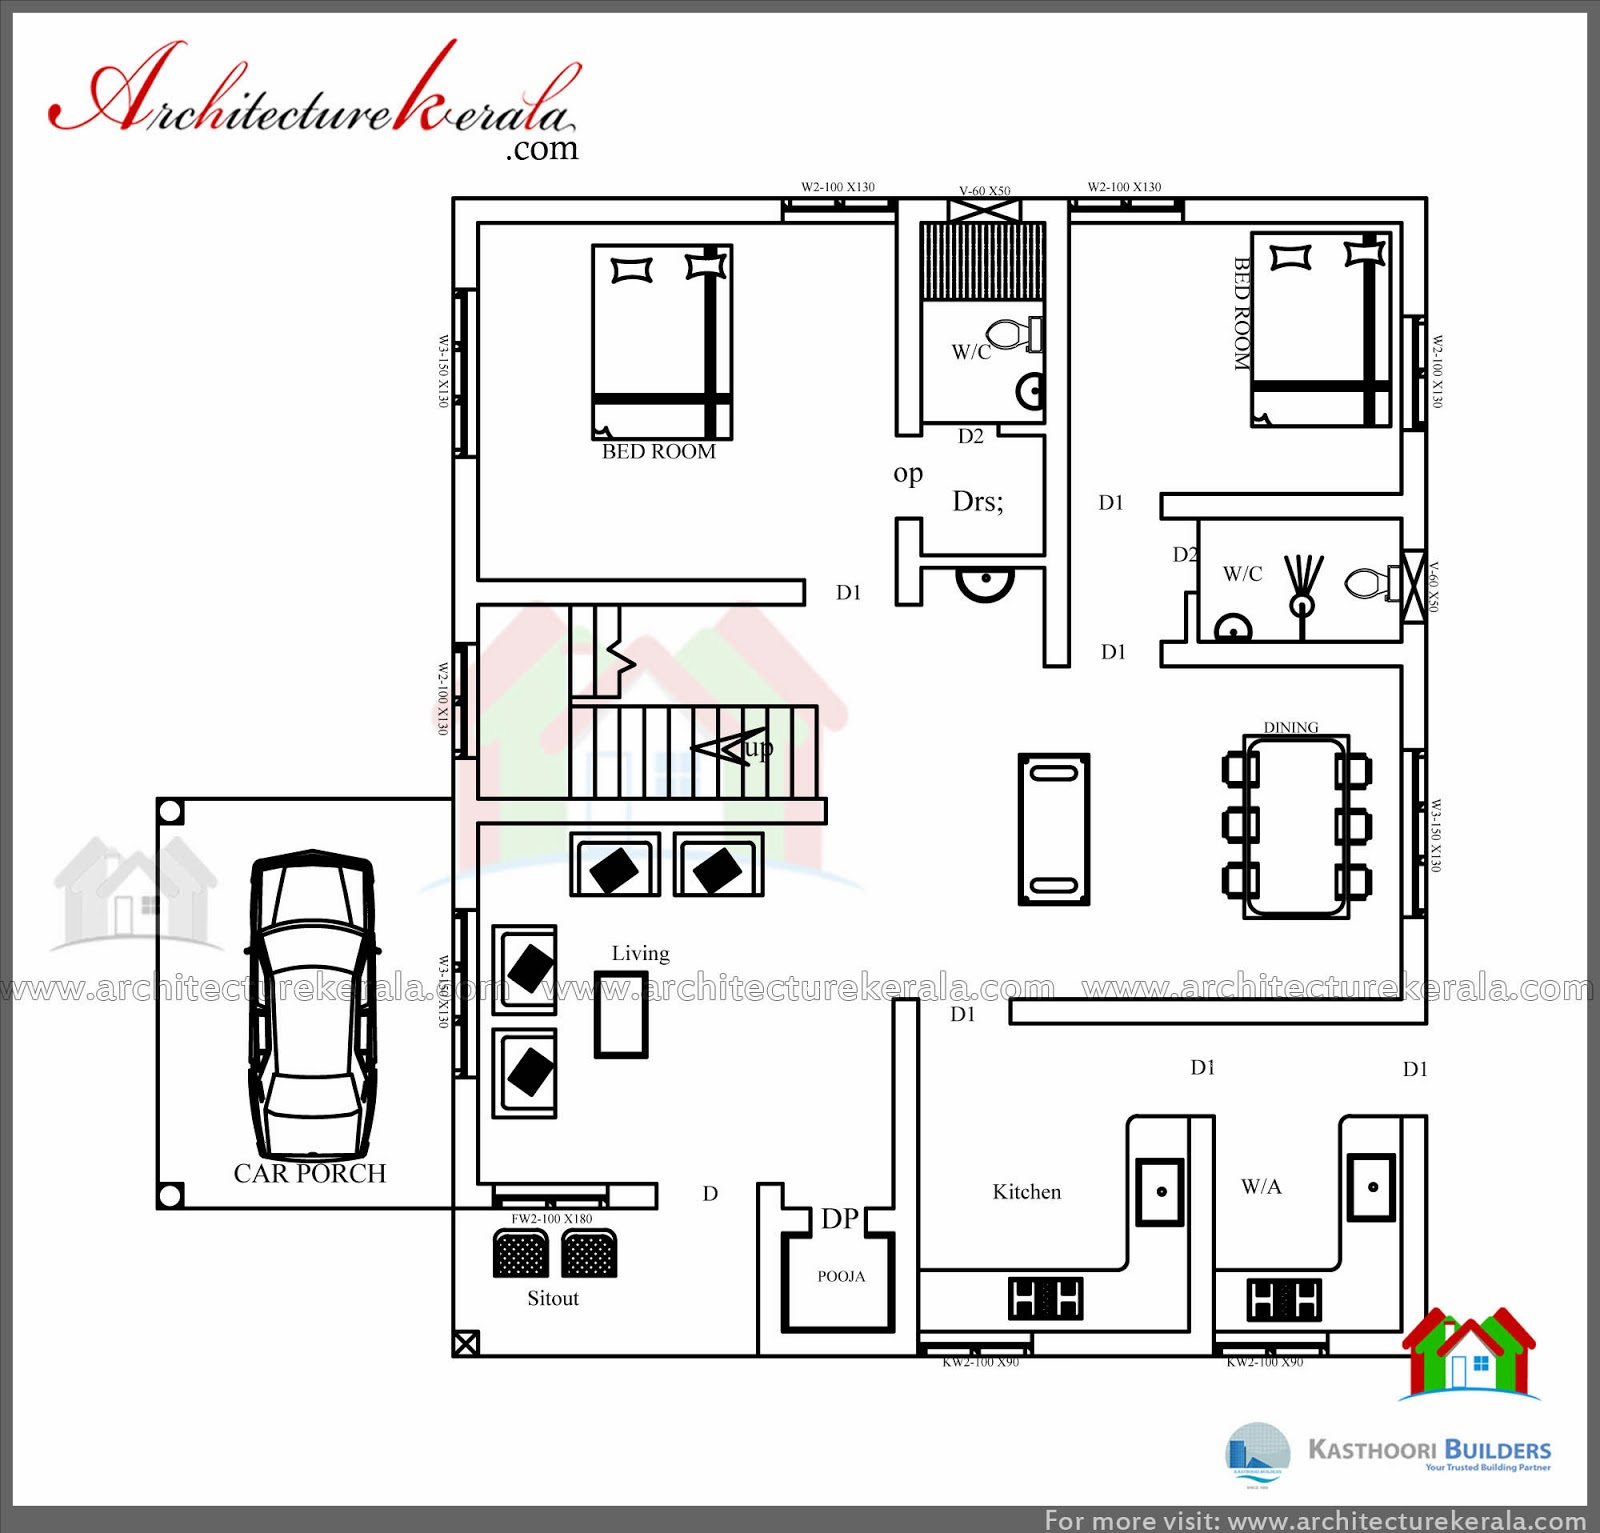 Low cost 3 bedroom kerala house plan with elevation free 3 bedroom kerala house plans